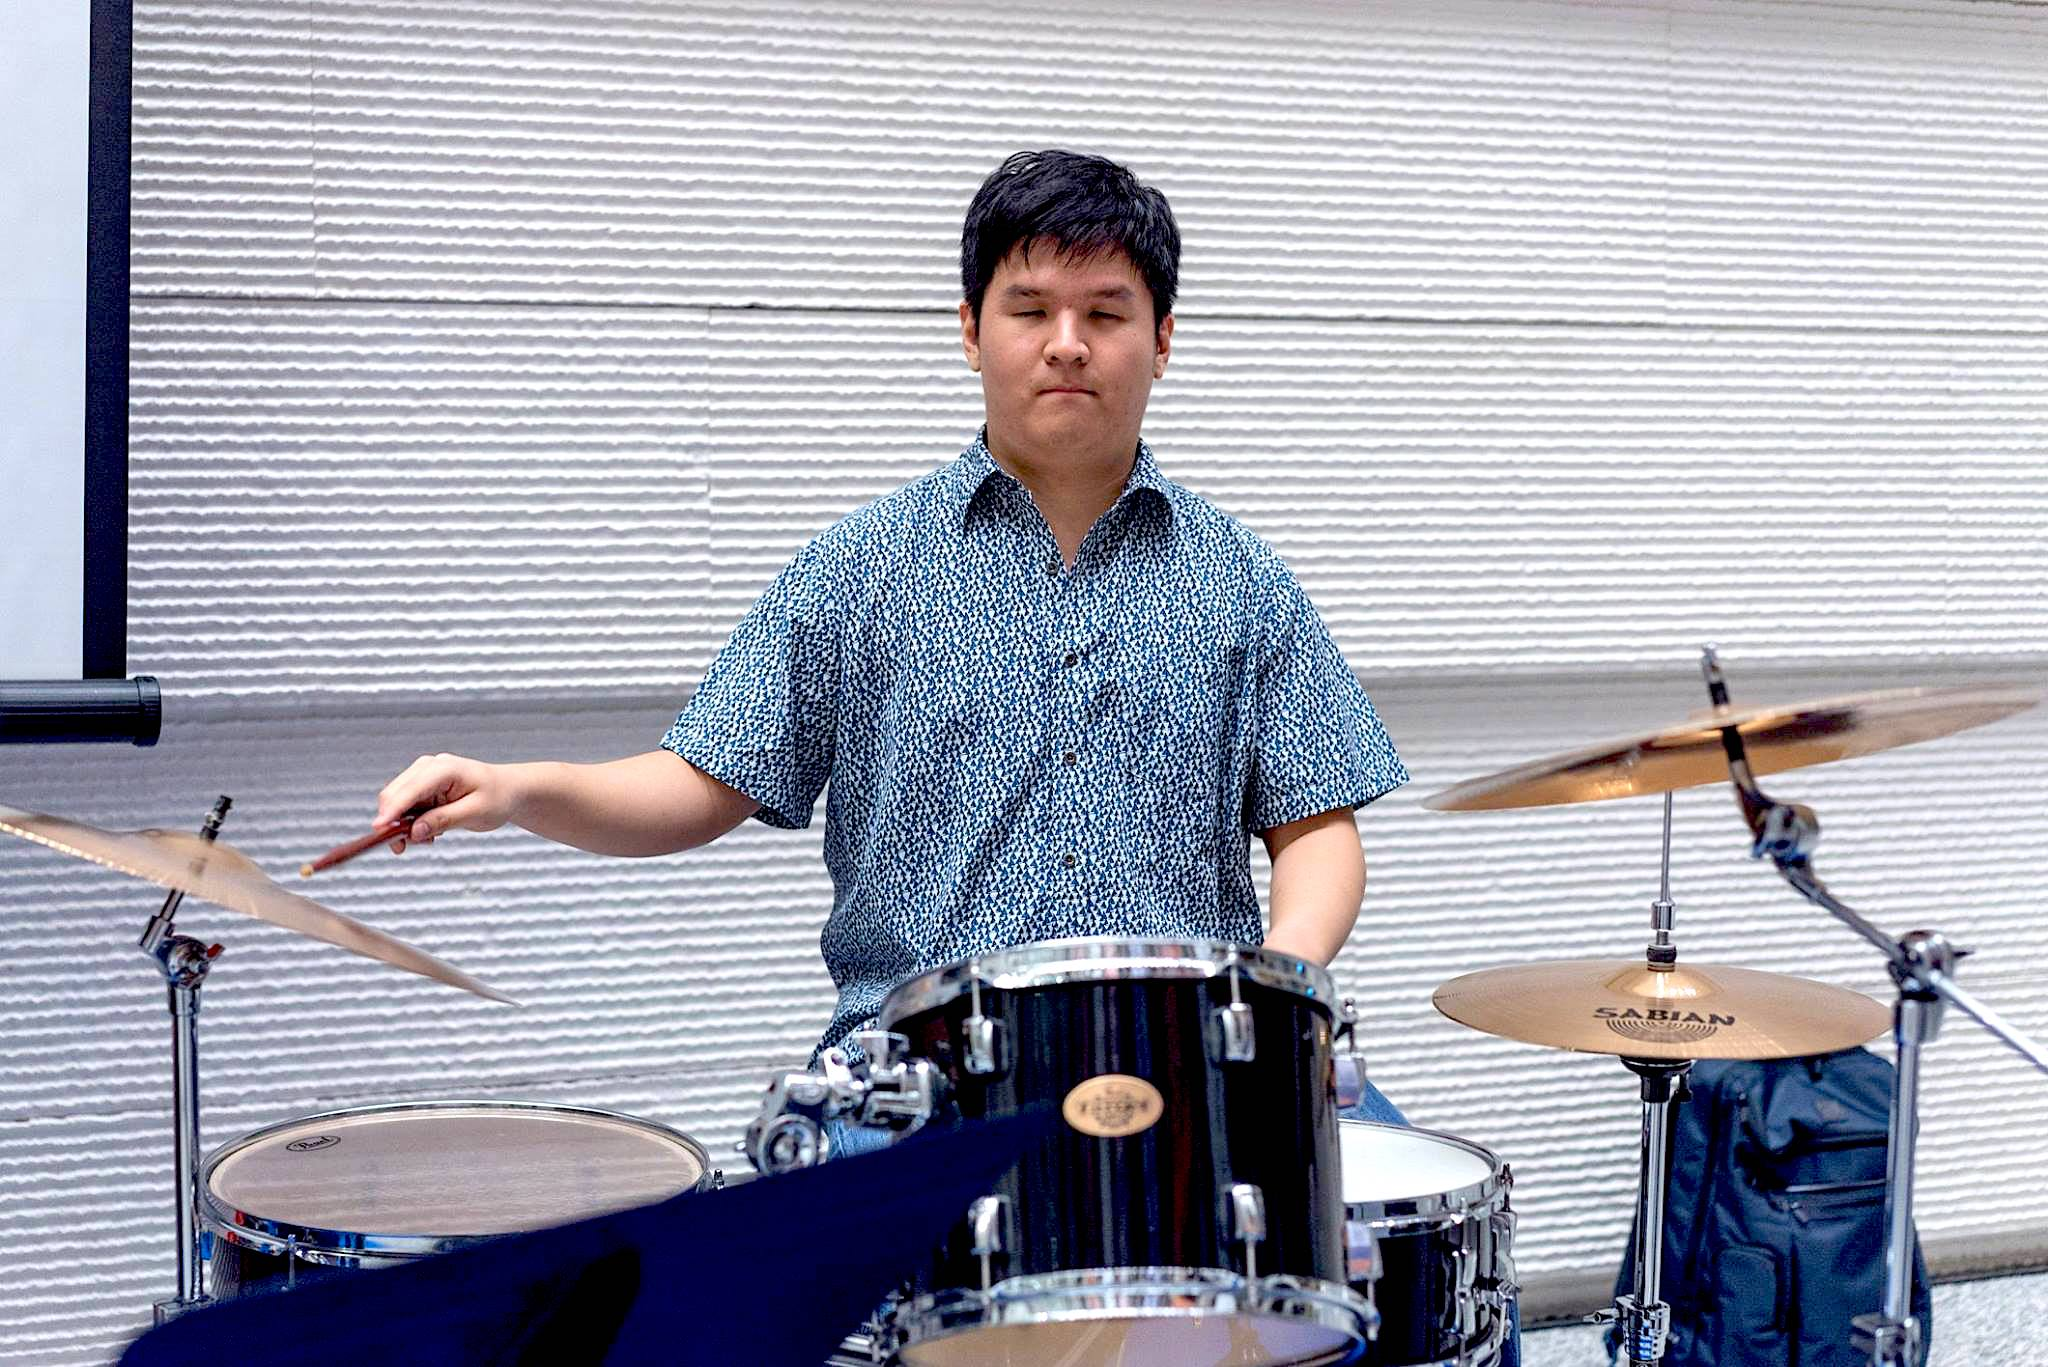 Steven plays the drumset as part of a jazz band with Assoc Prof Dr Tony Makarome